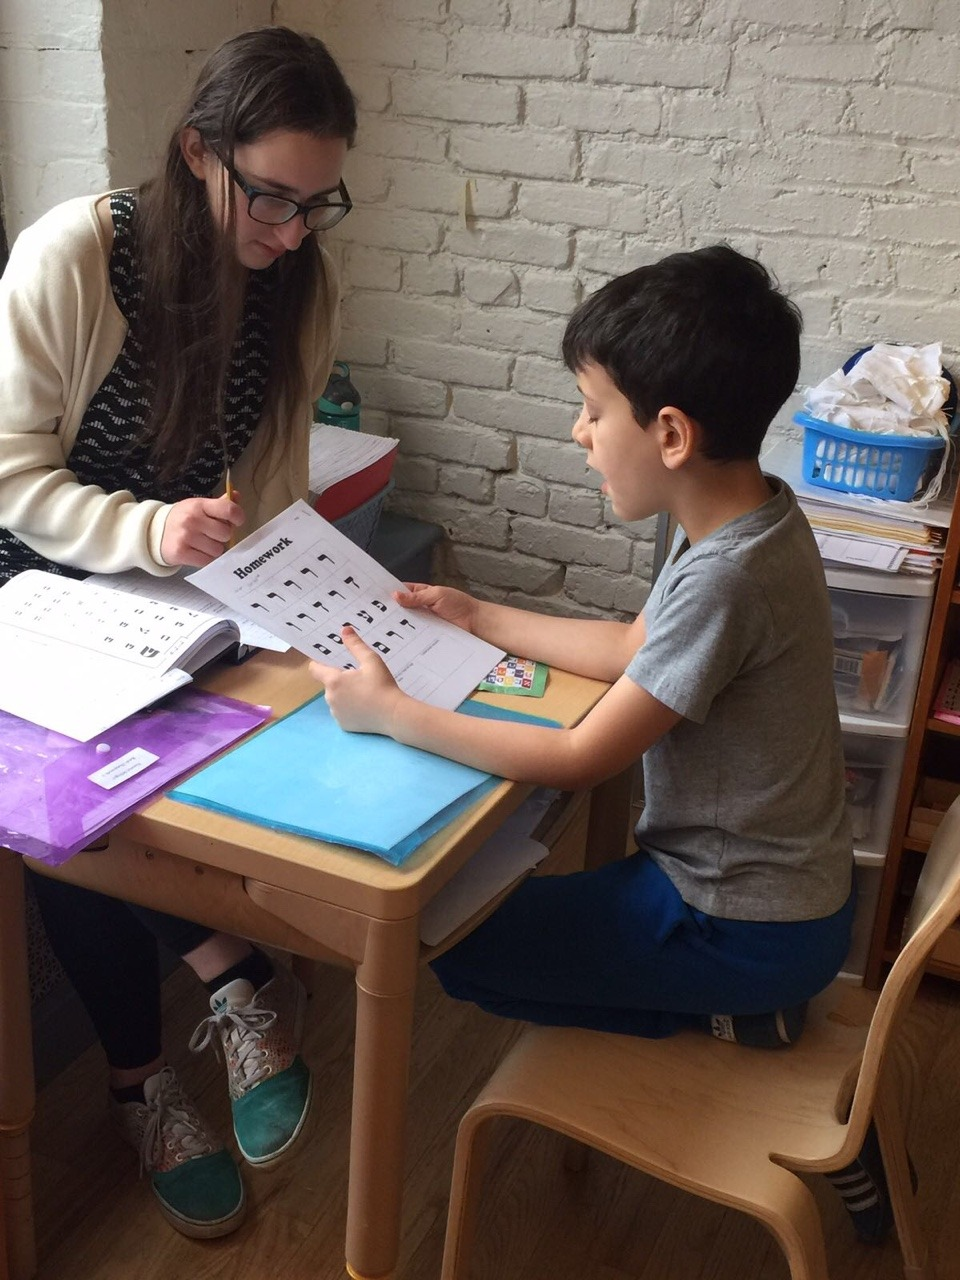 Who Can Be This Child's Friend? A Thriving Model of Inclusion at Luria Academy